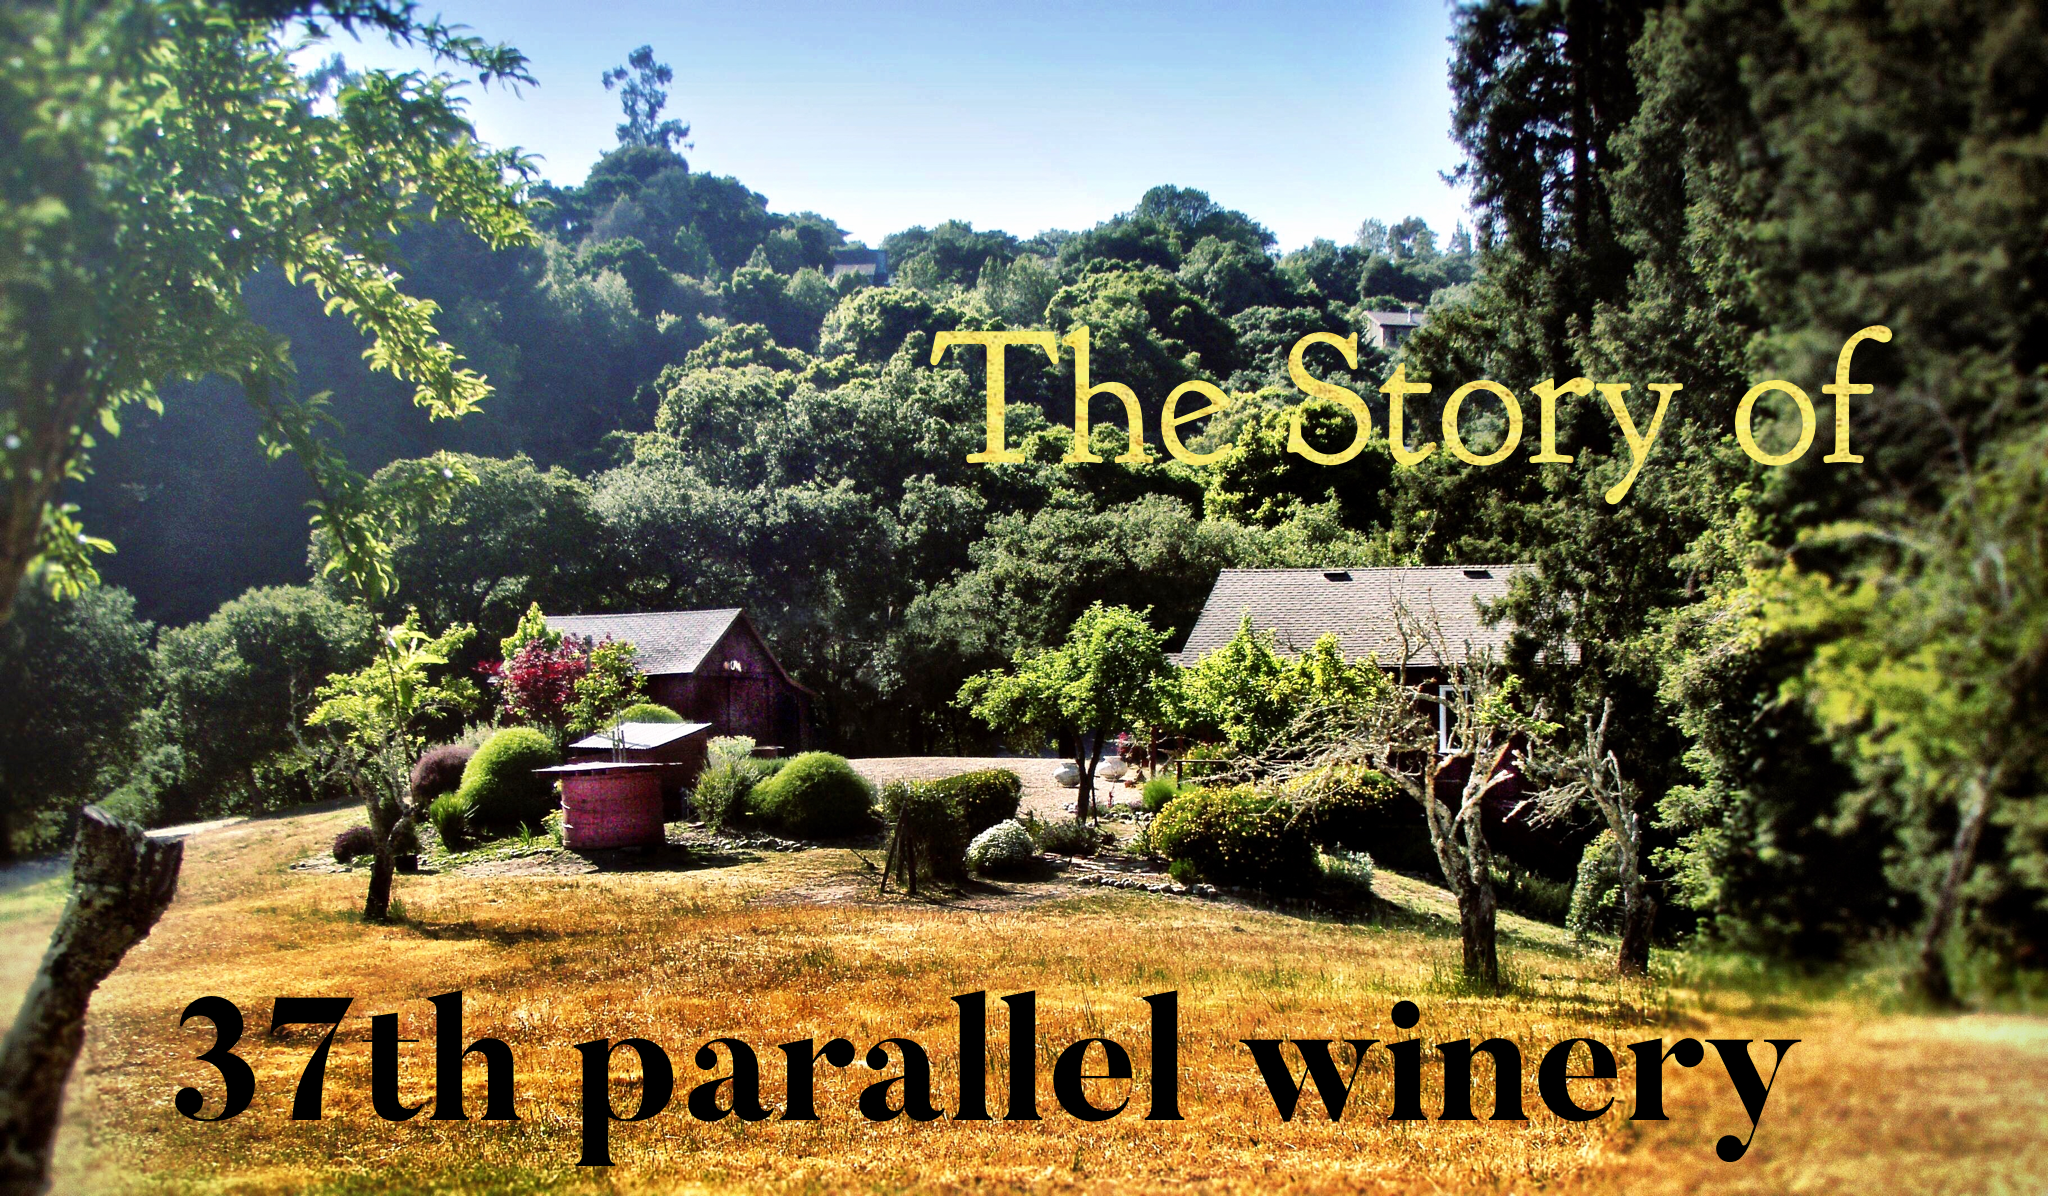 Les Wright 37th Parallel Winery